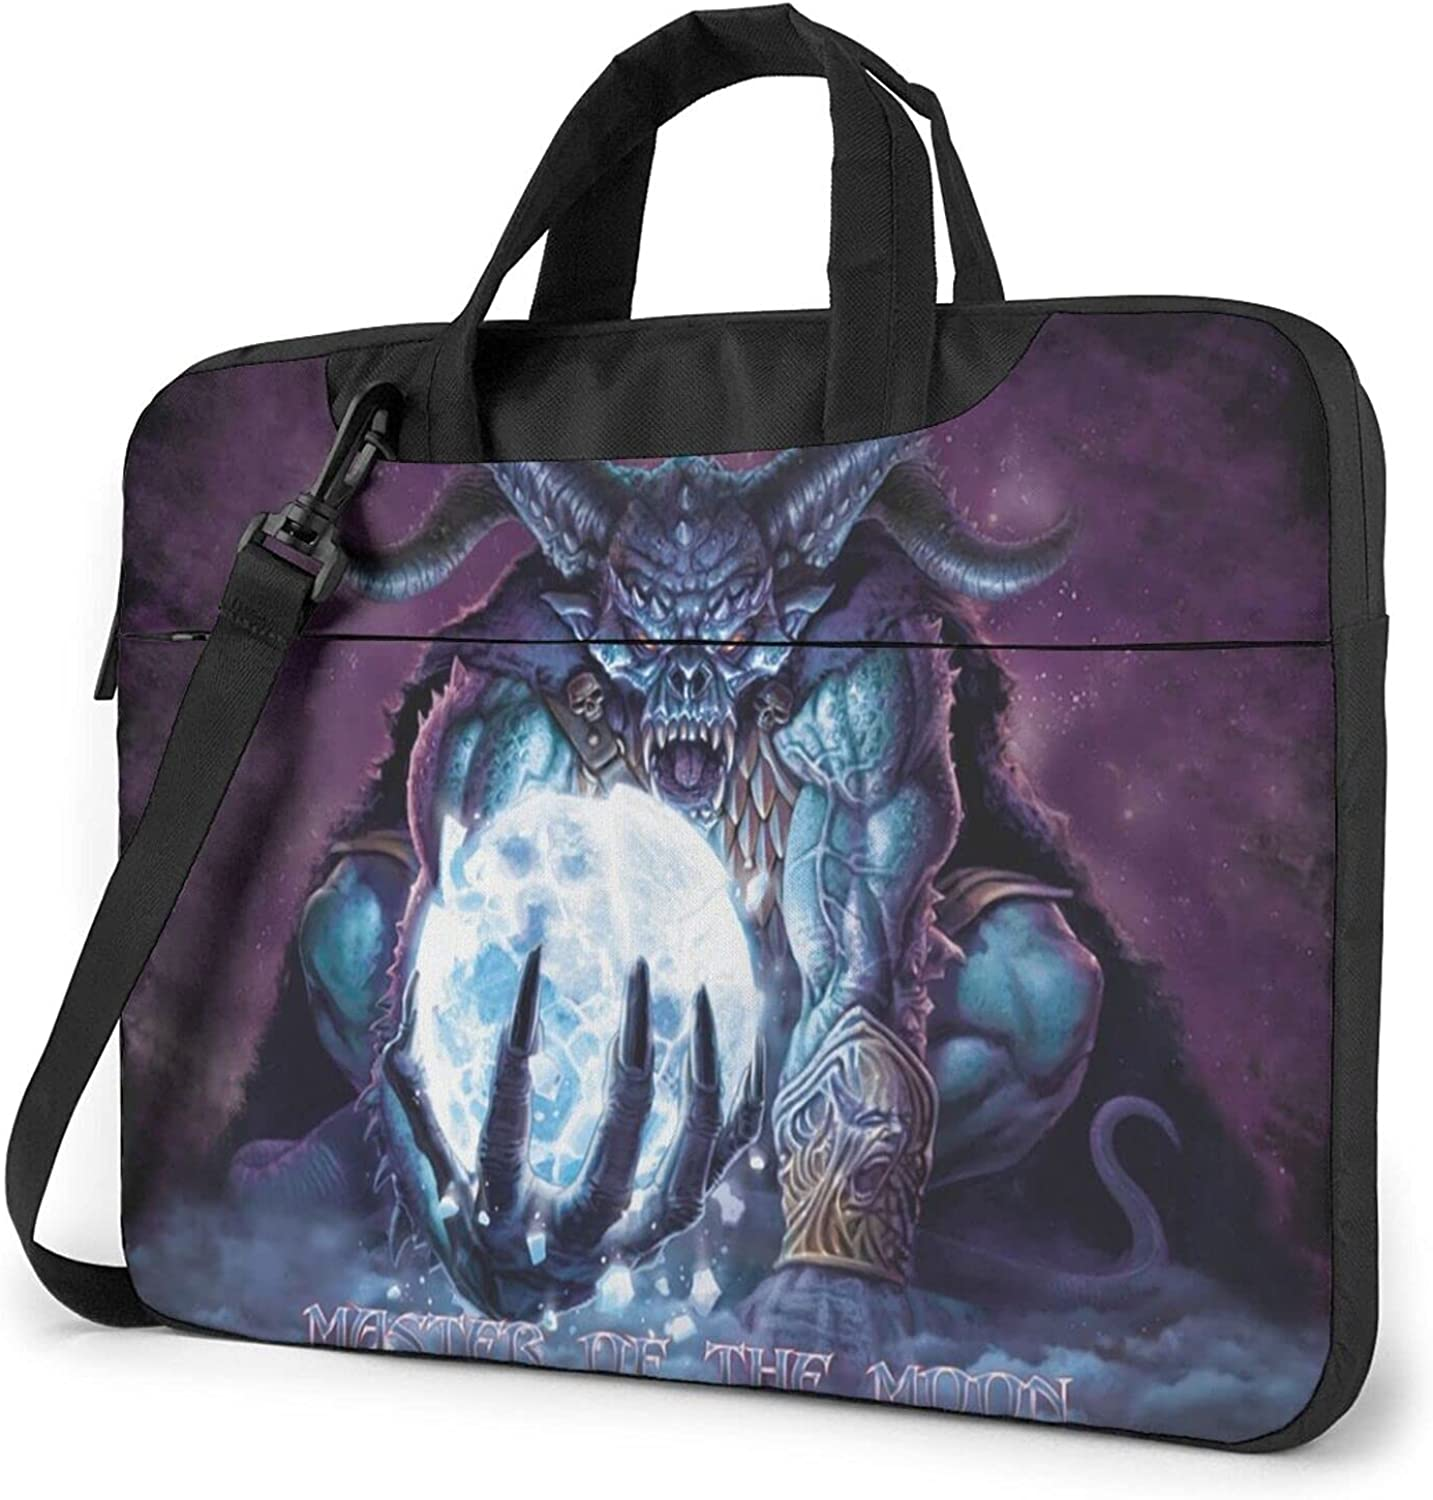 Laptop Sleeve Case Computer Bag Quantity limited Arts James Complete Free Shipping Dio Ronnie